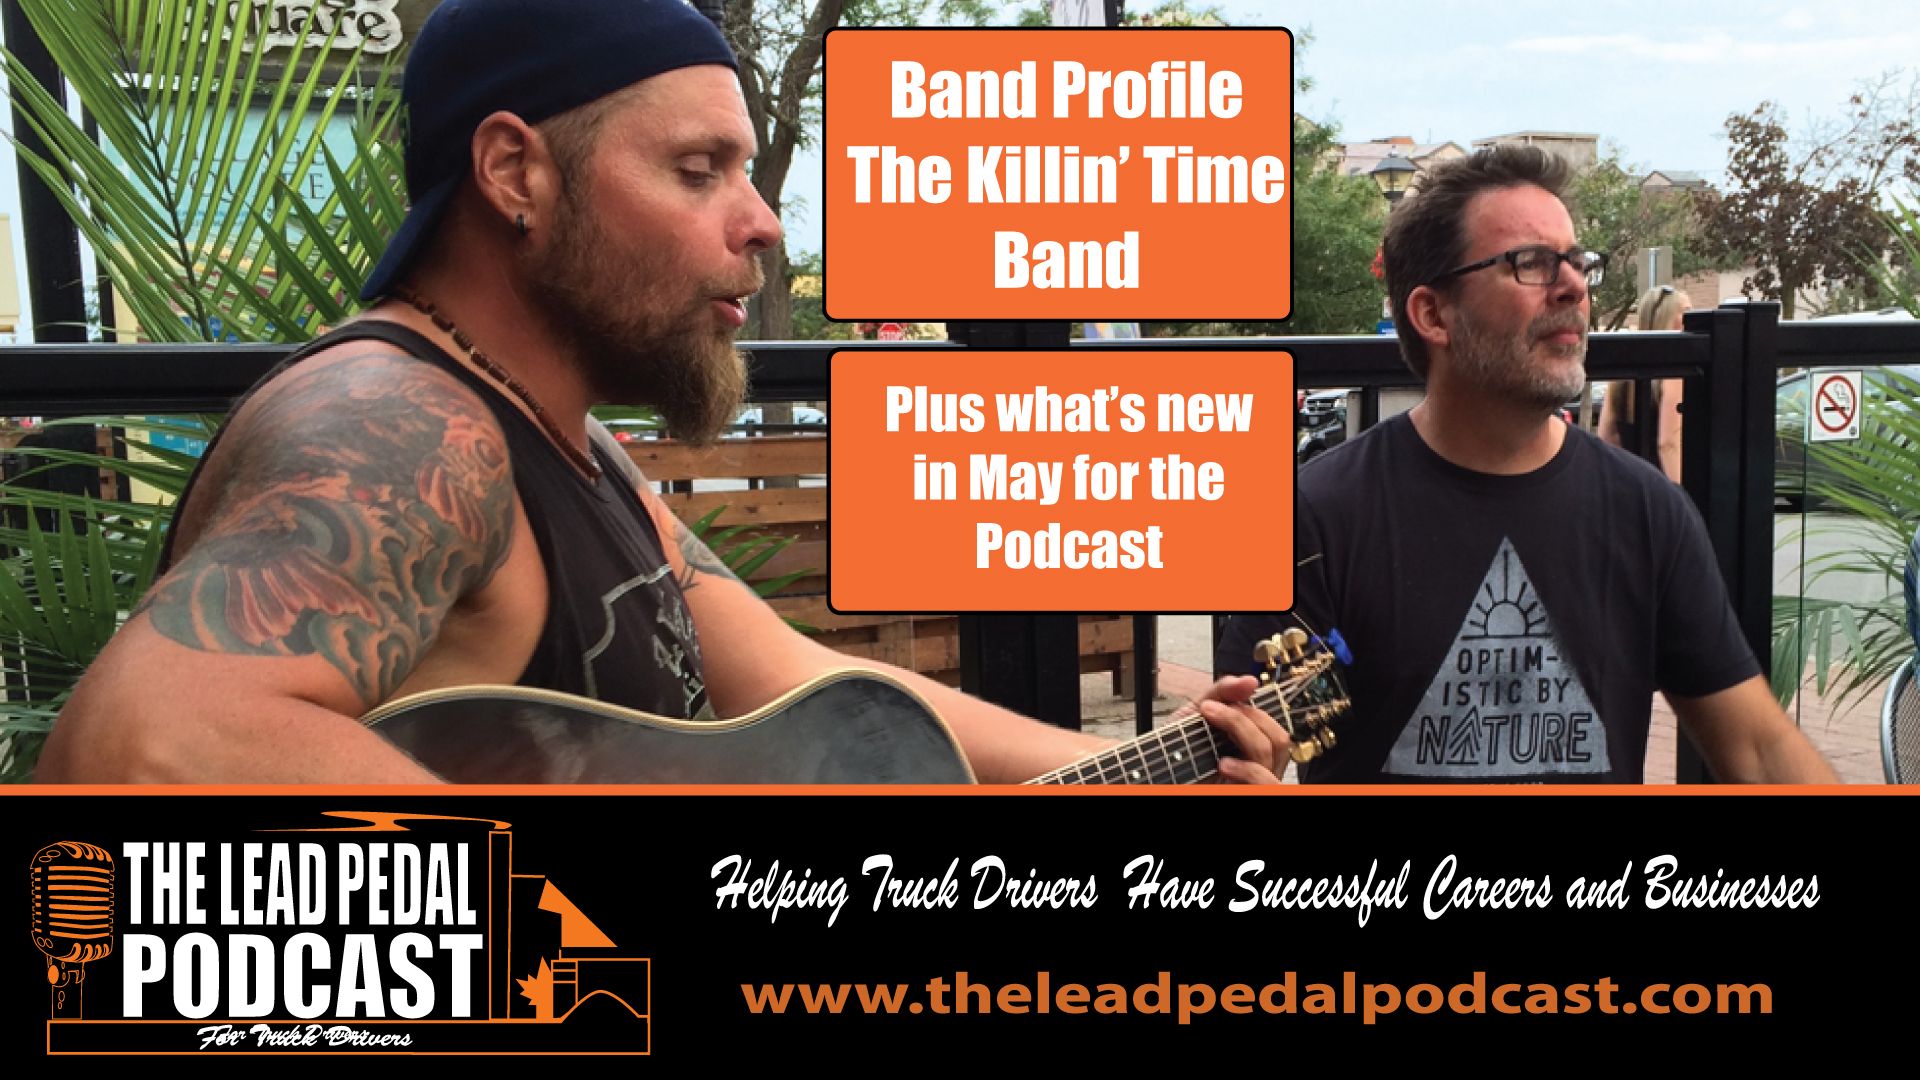 Killin Time Band Profile